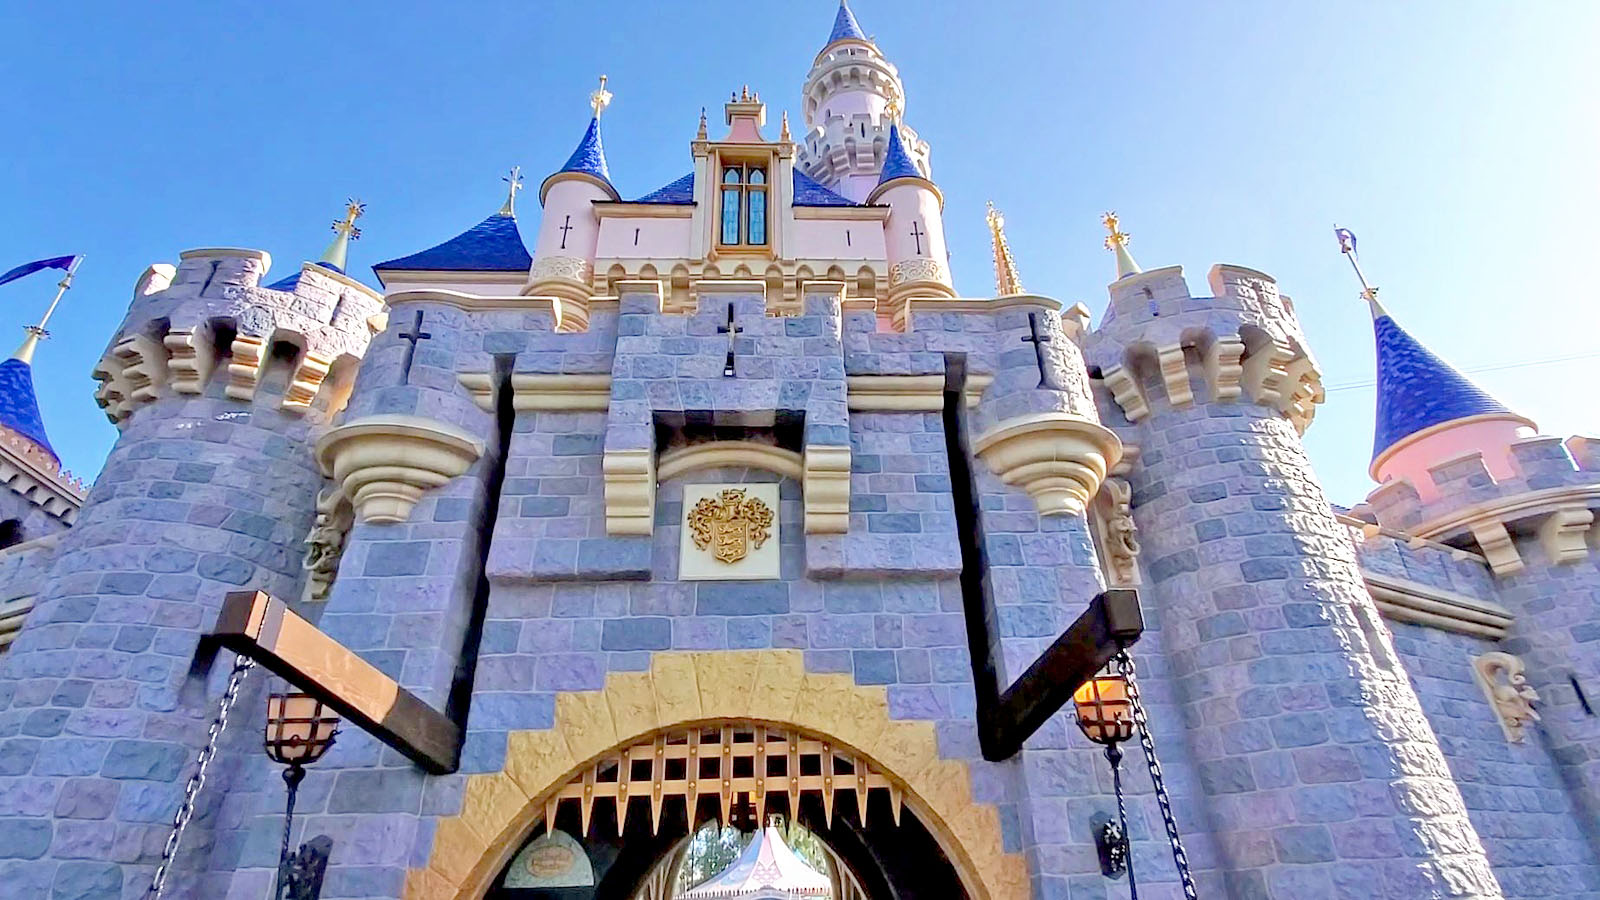 DETAILS: Partial refunds and/or expiration extensions for Disneyland Resort Annual Passholders